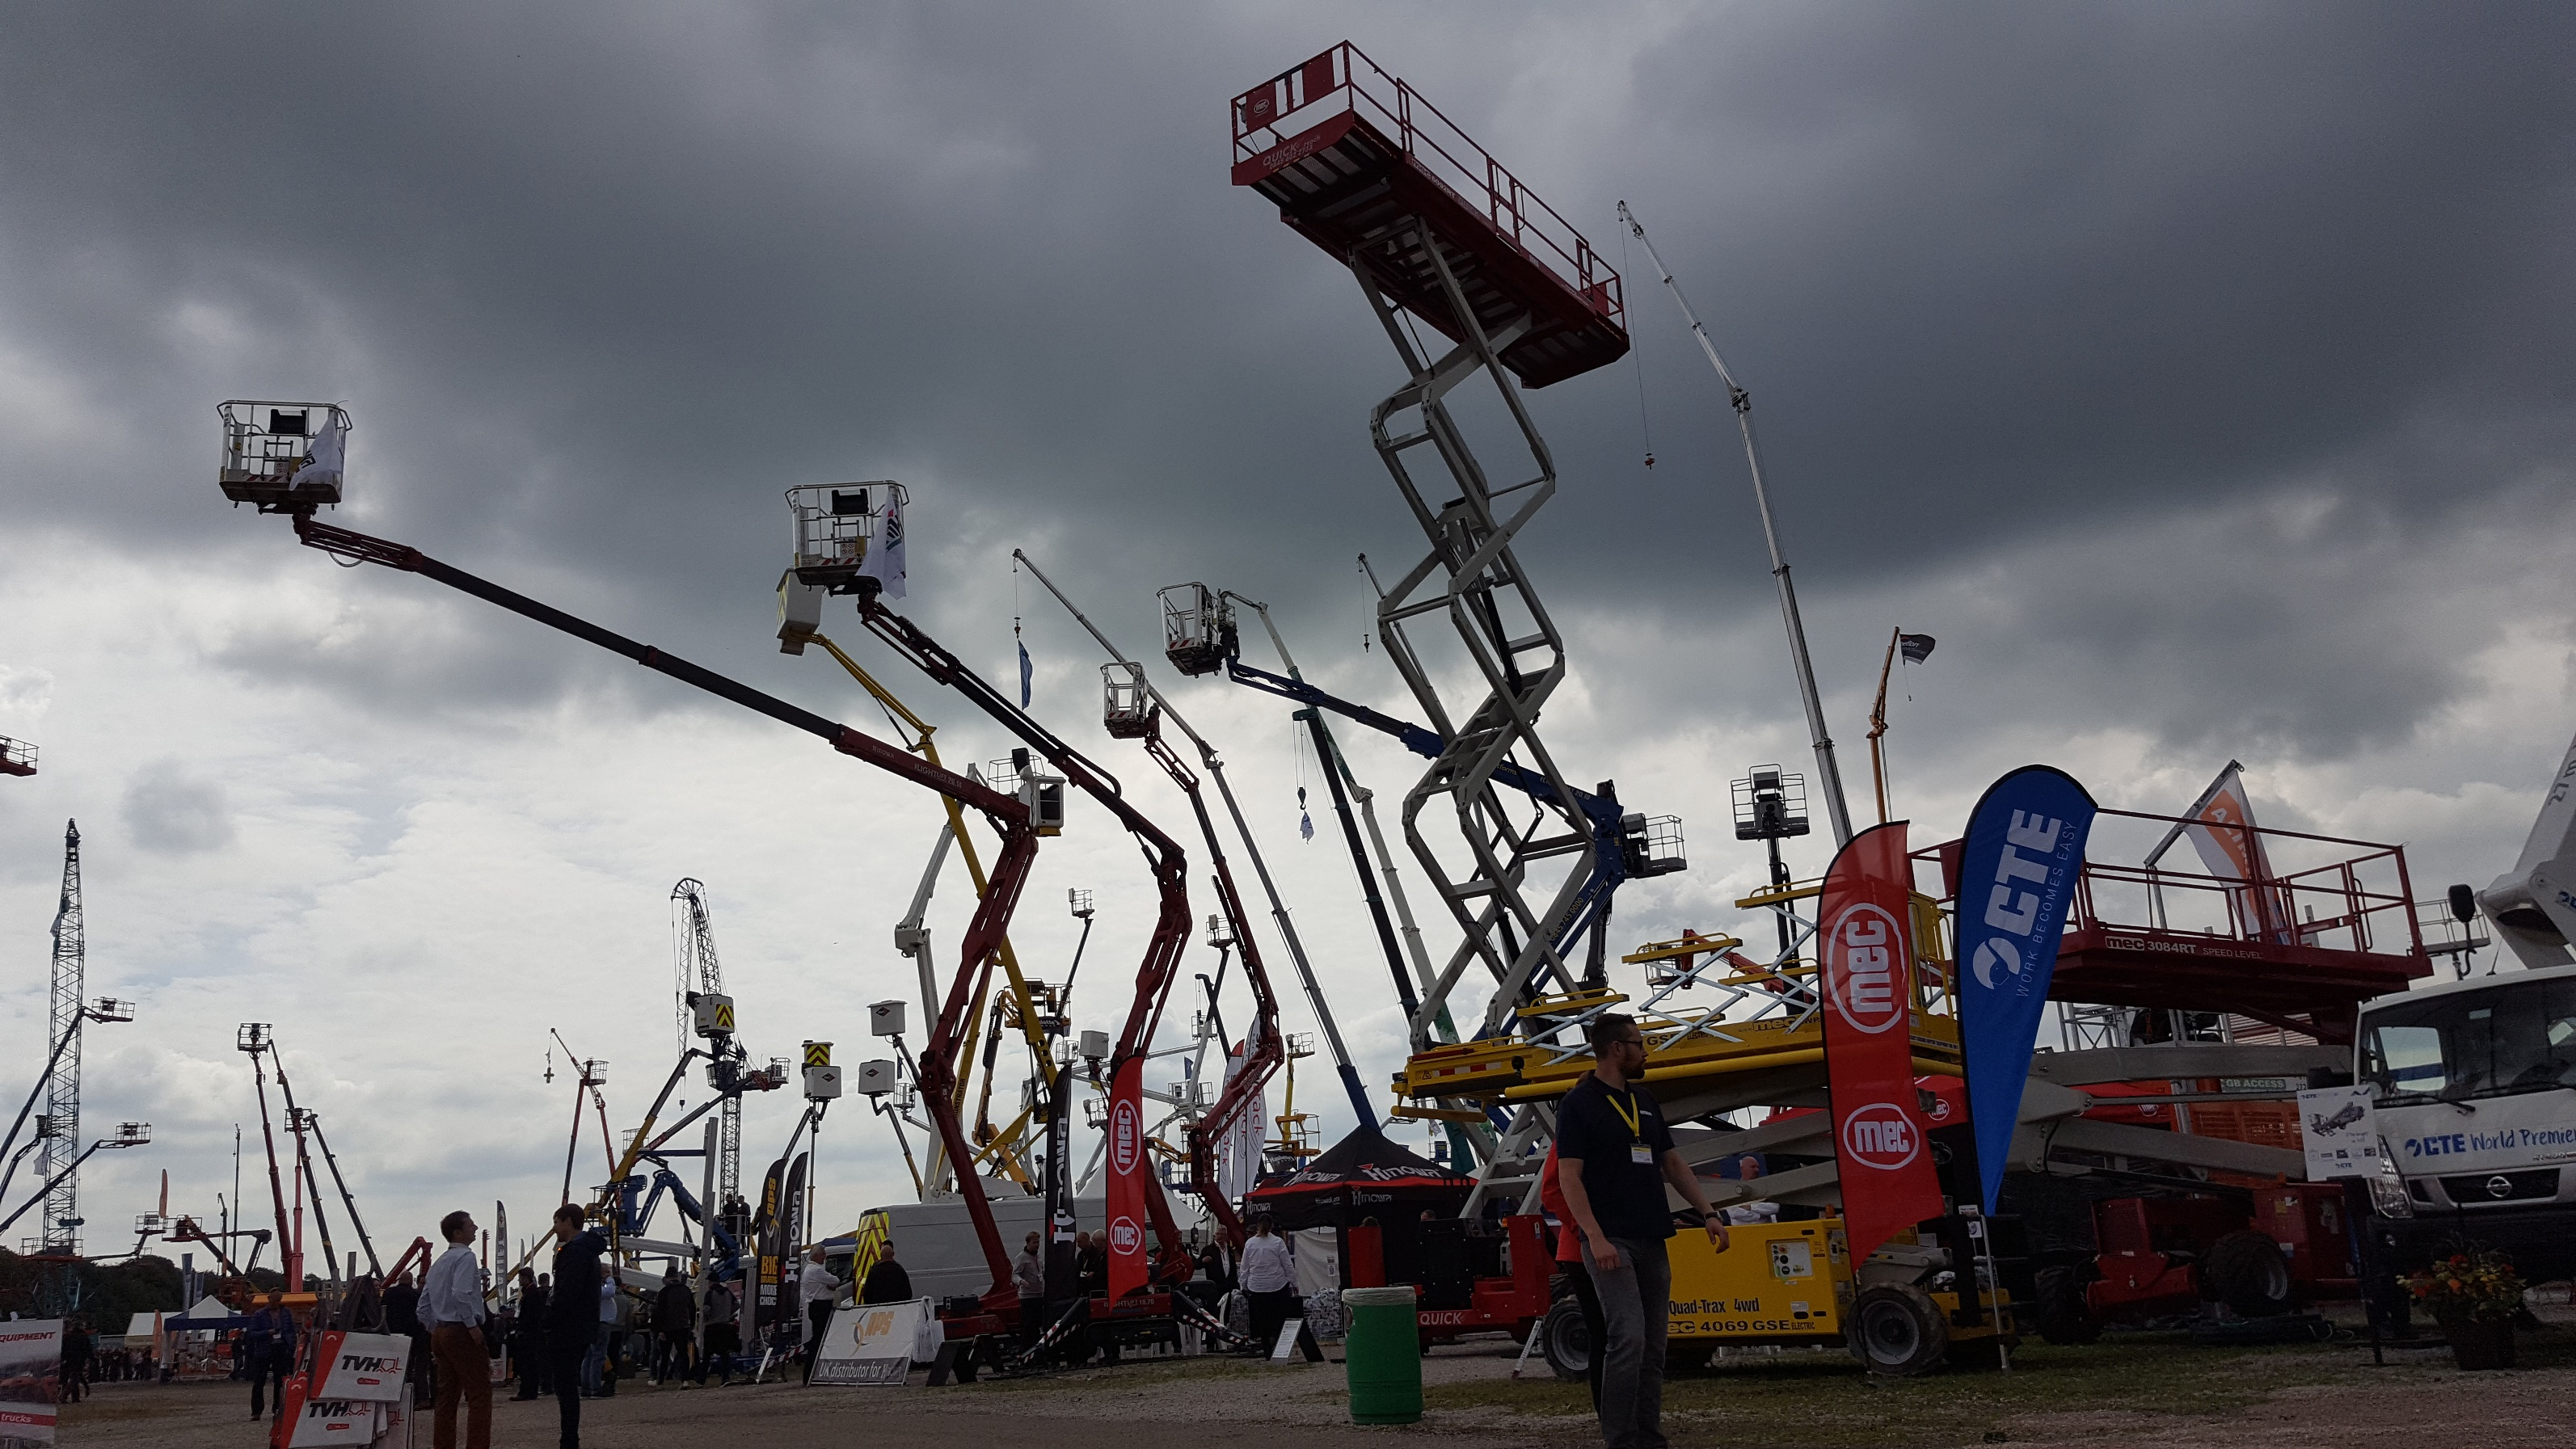 Make IAPS Group your one-stop shop at Vertikal Days